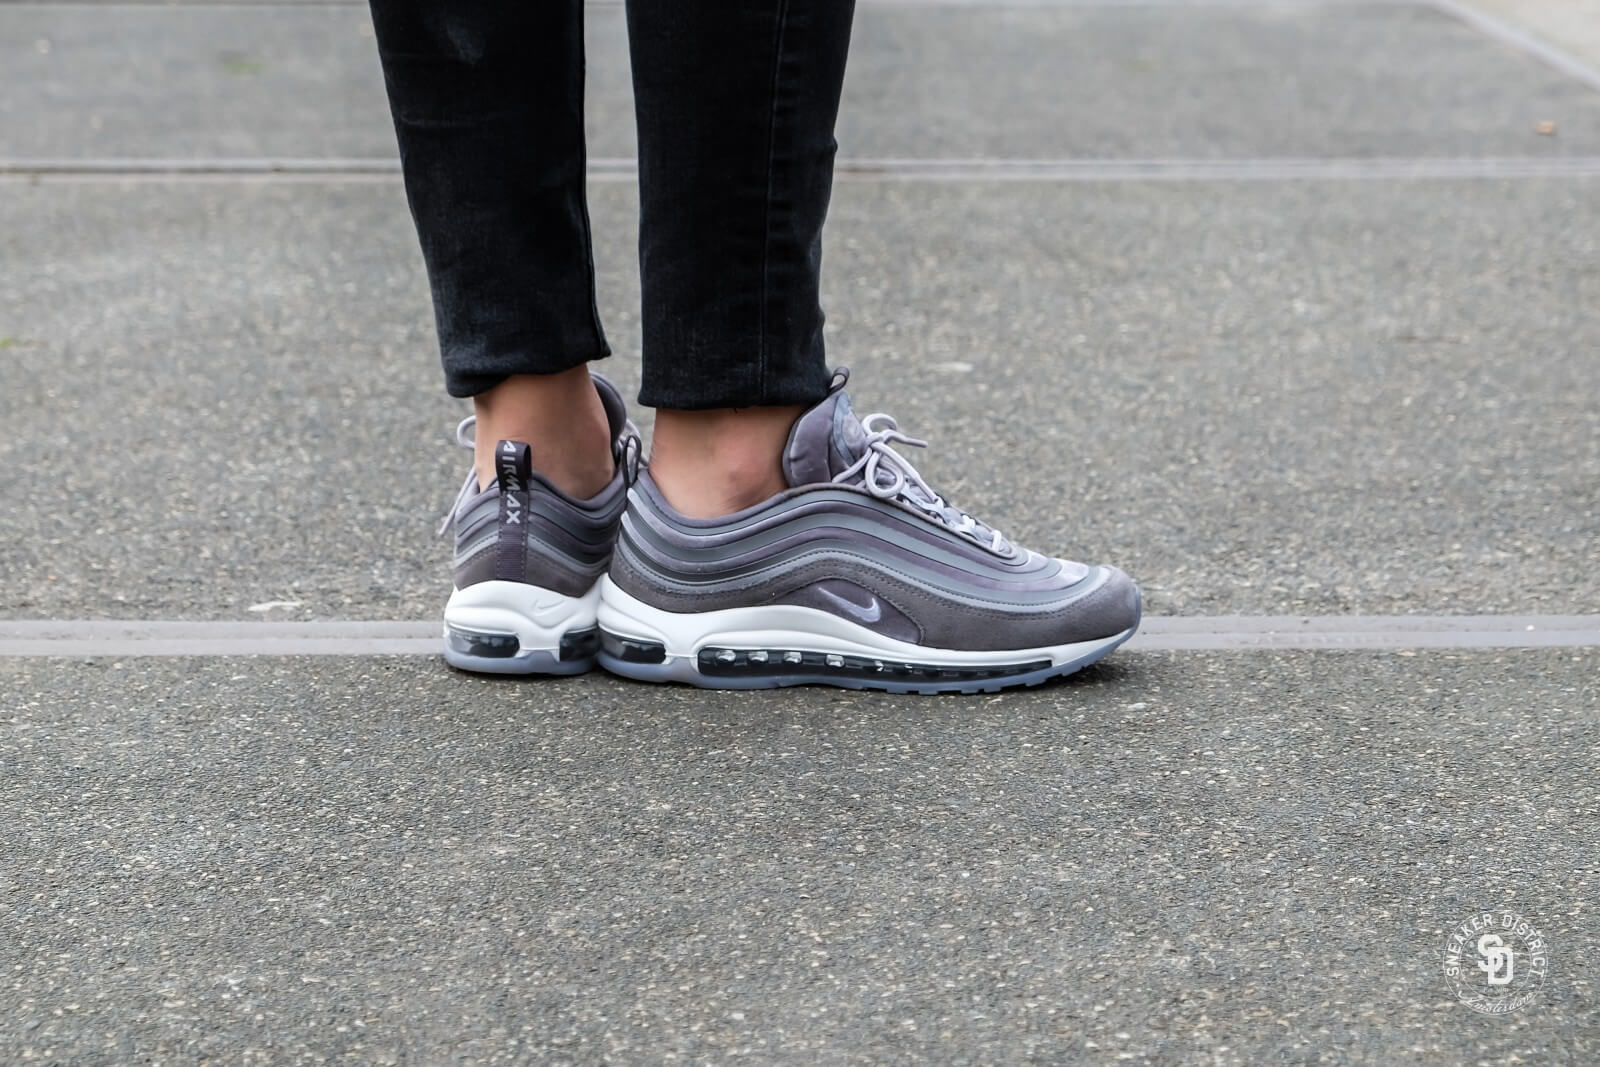 Nike Air Max 97 LX Wmns Black Black White | Footshop